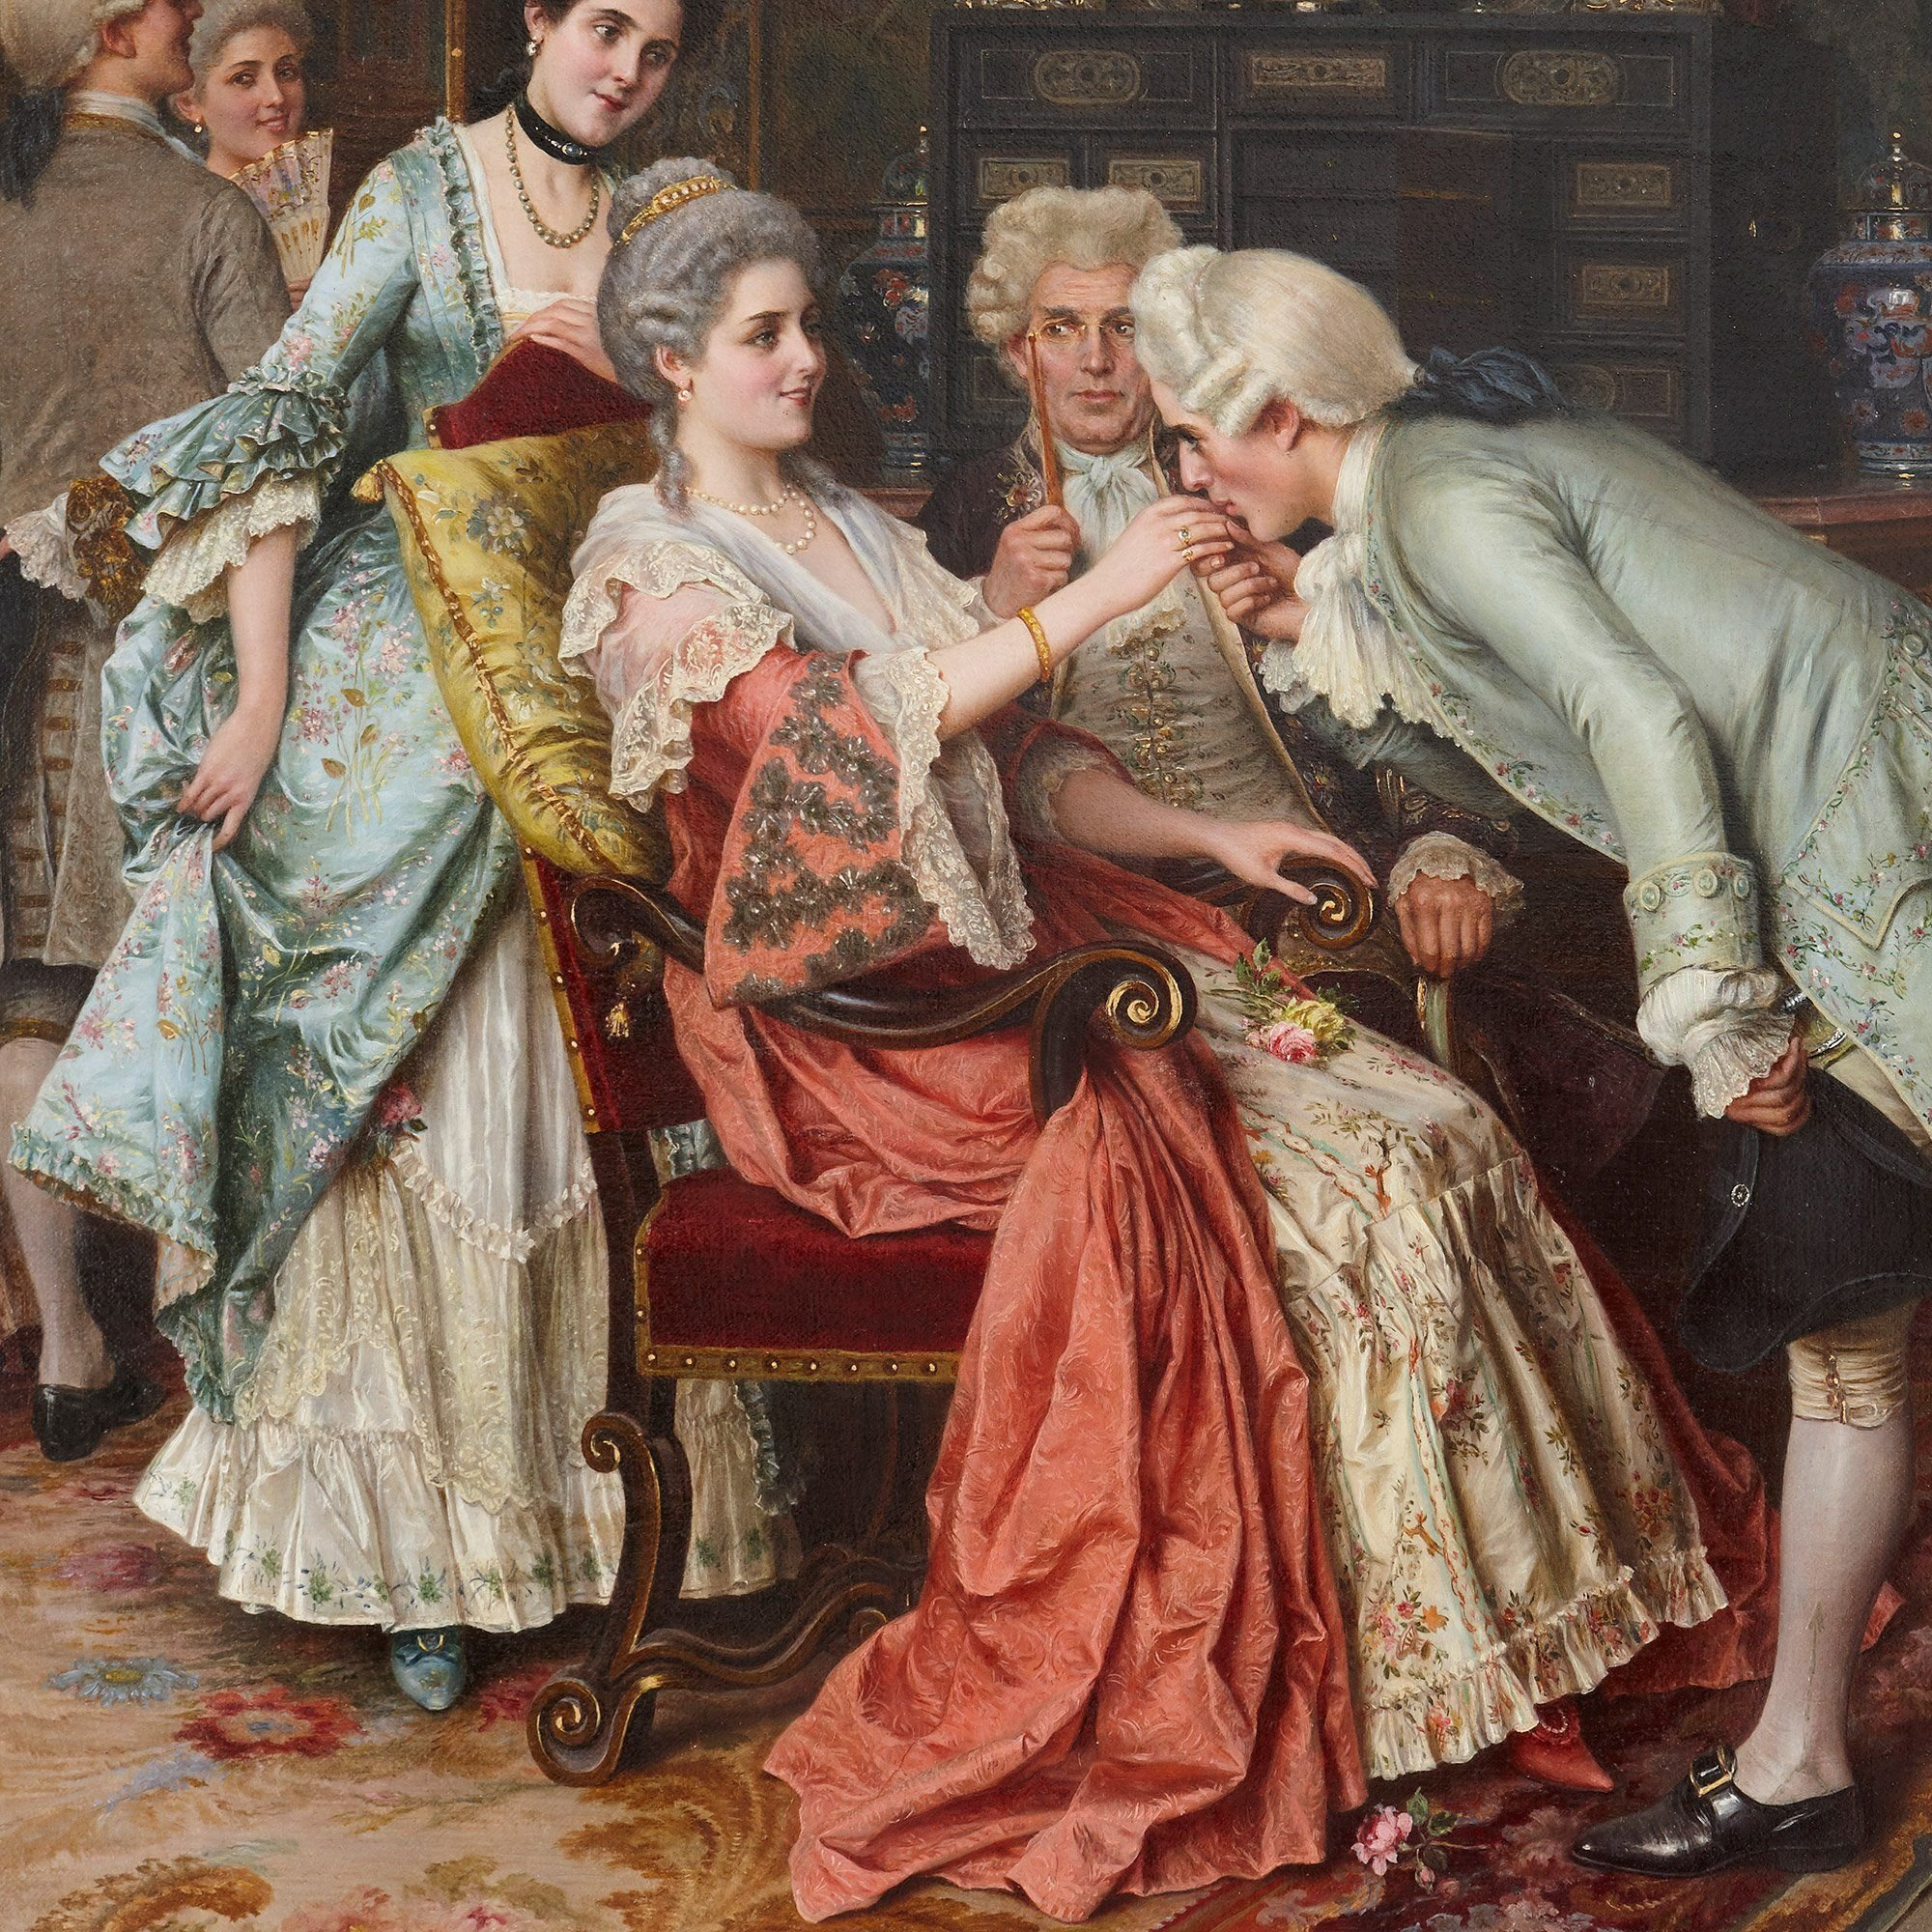 The Successful Suitor 19th Century Oil Painting By Ricci Mayfair Gallery